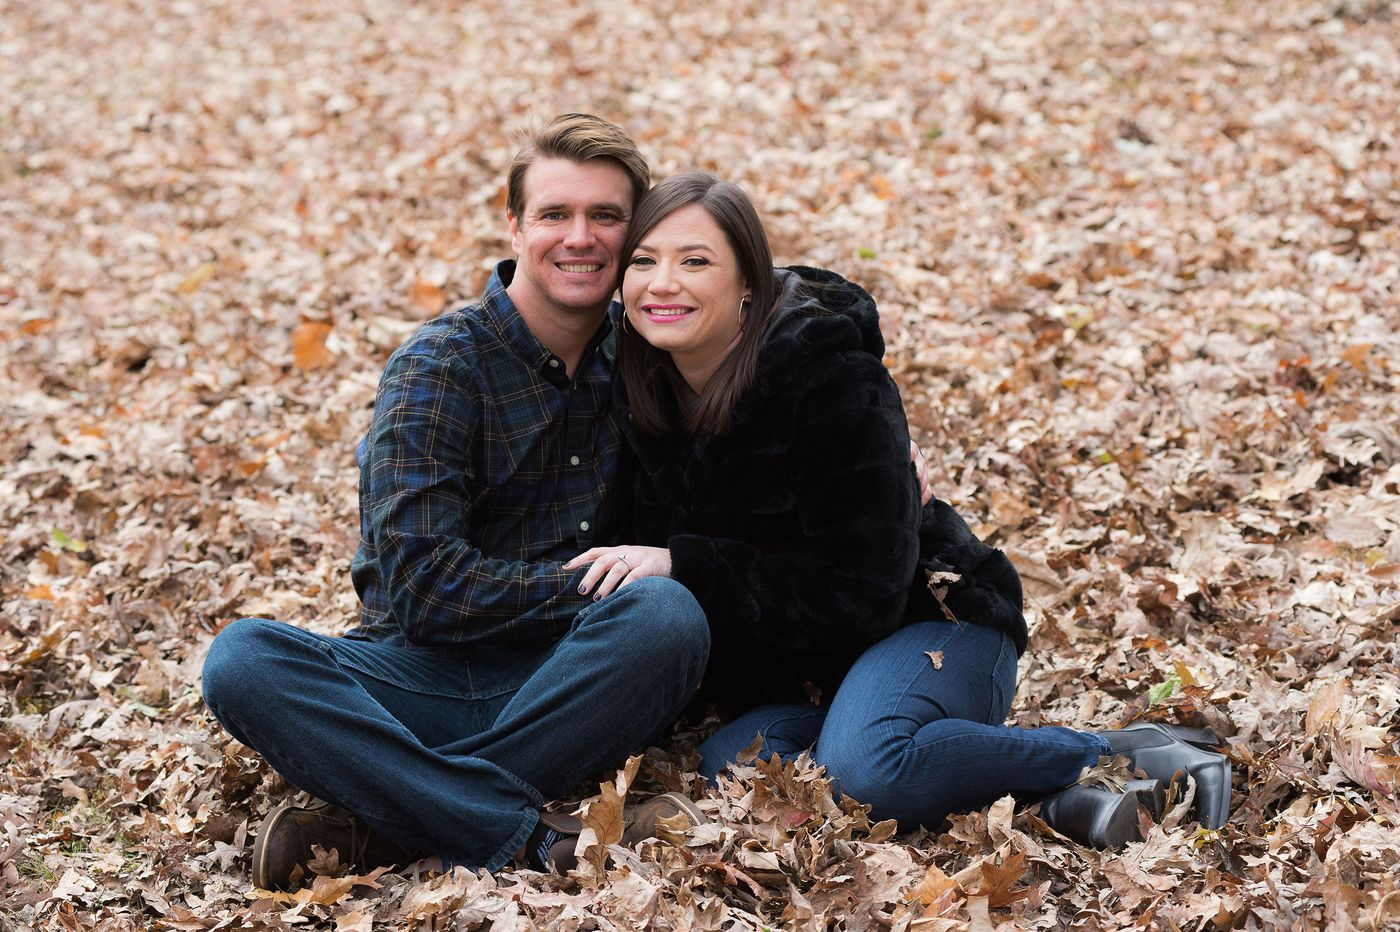 Amy Discount and Ryan Unger prove they can get through anything together